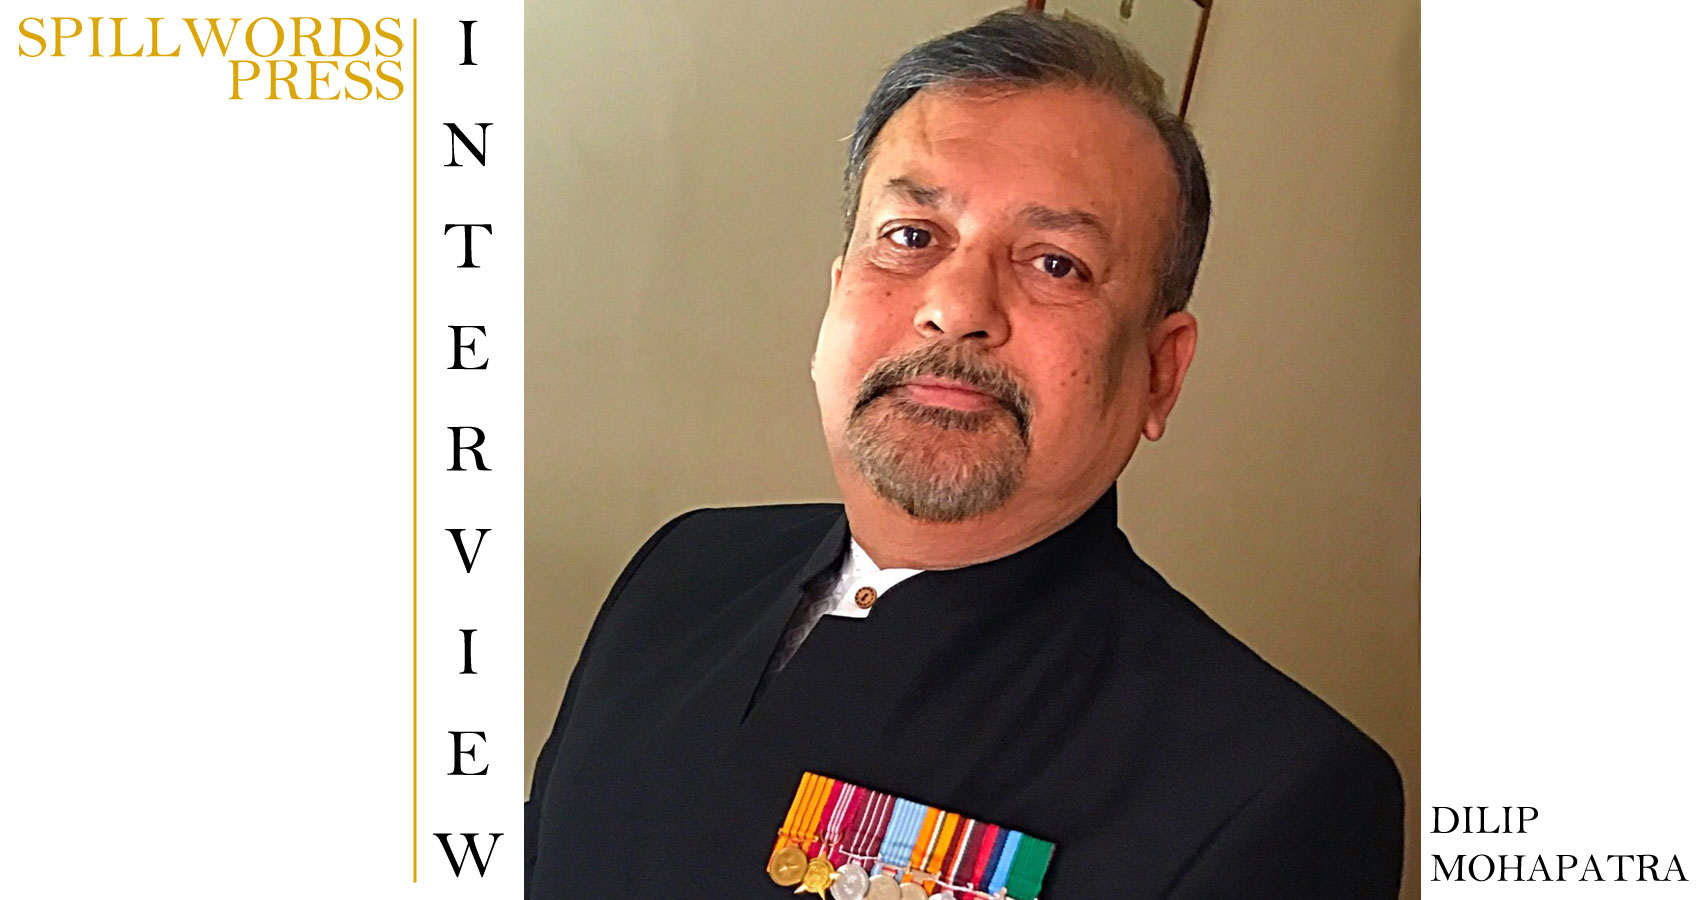 Interview With Dilip Mohapatra at Spillwords.com